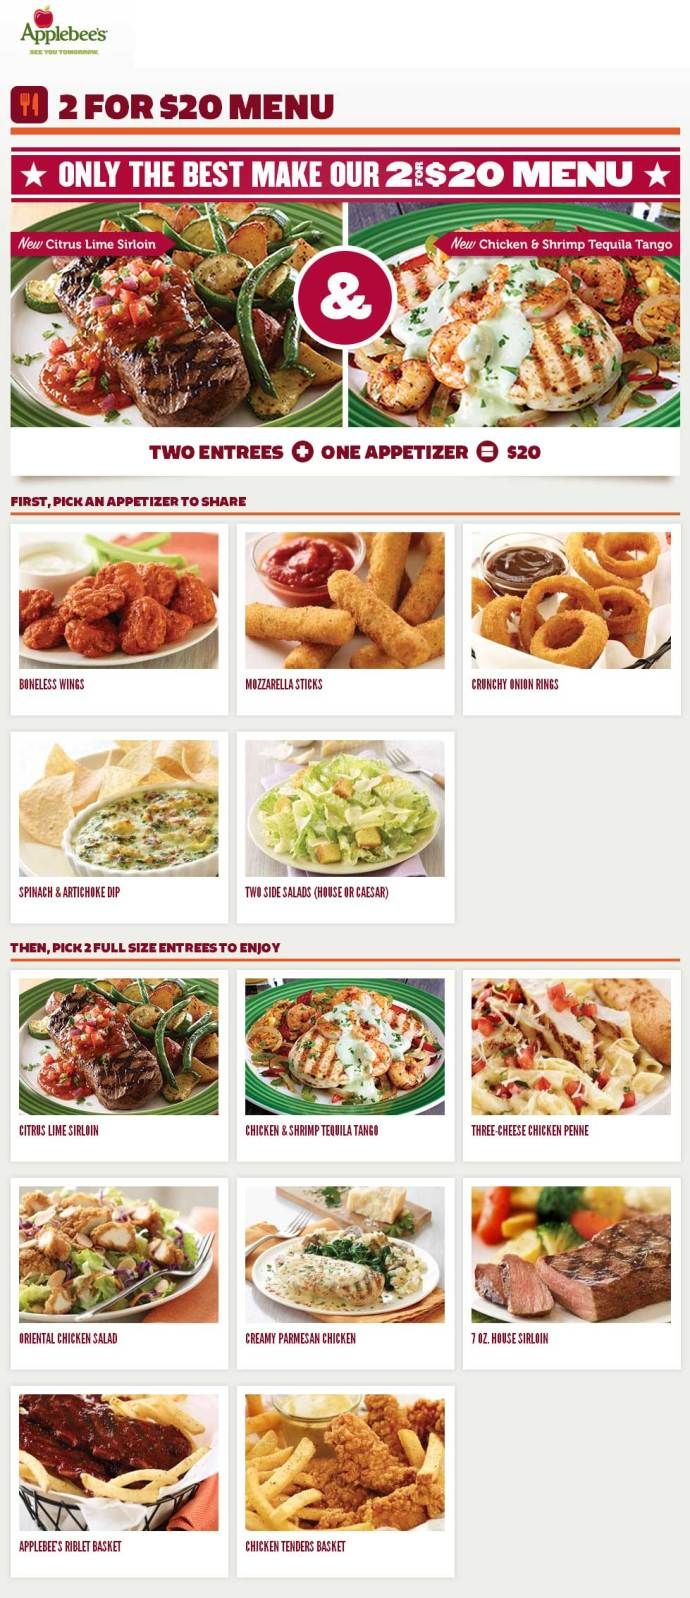 Restaurant coupons applebees